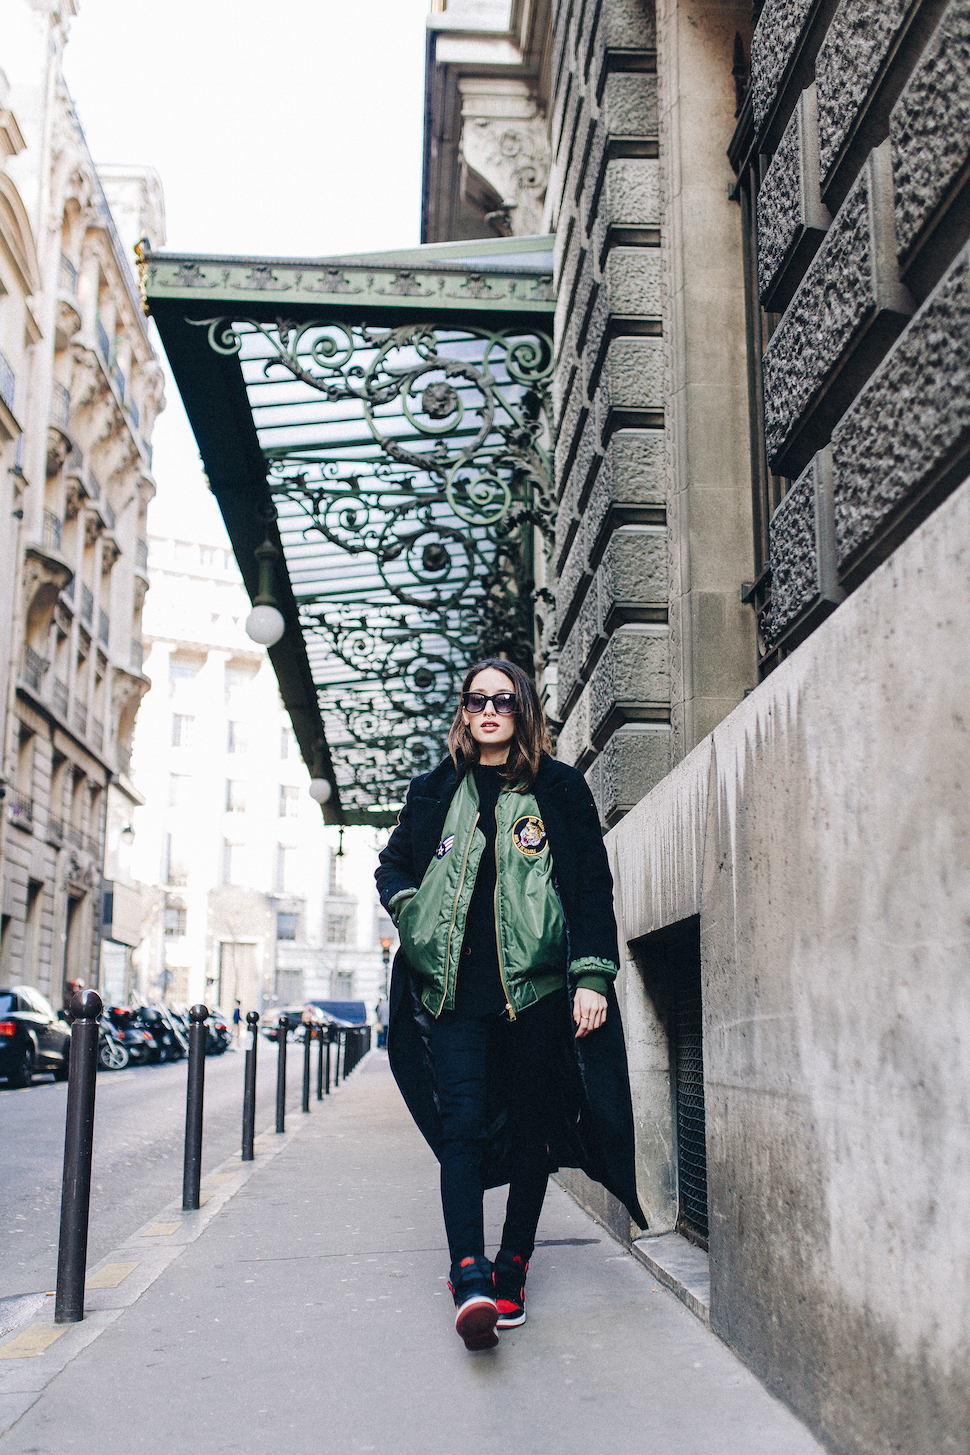 Alexandra Guerain is wearing a long coat from Asos